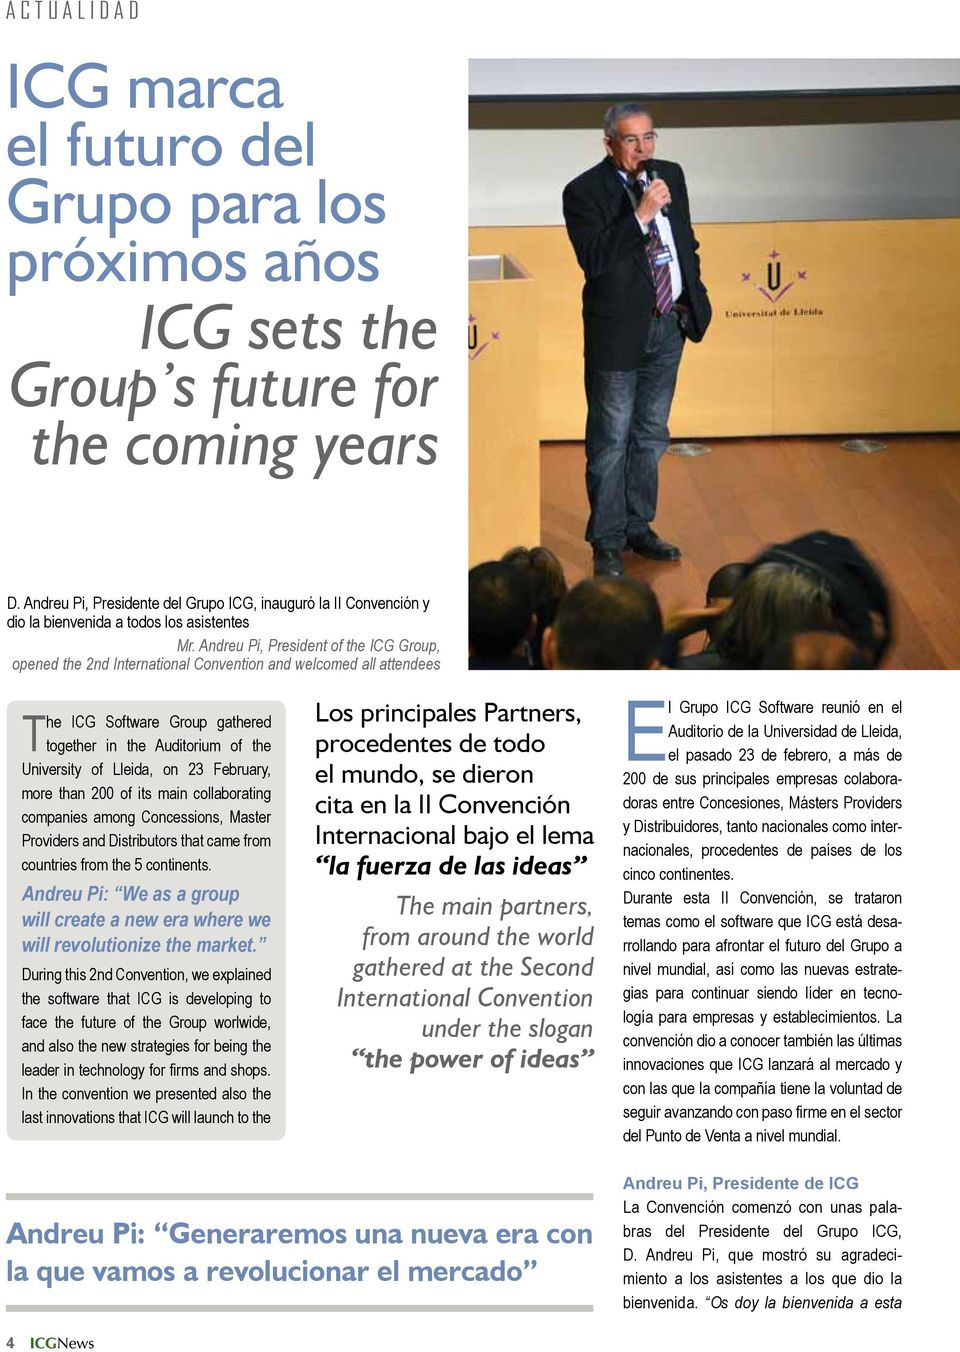 Andreu Pi, President of the ICG Group, opened the 2nd International Convention and welcomed all attendees The ICG Software Group gathered together in the Auditorium of the University of Lleida, on 23